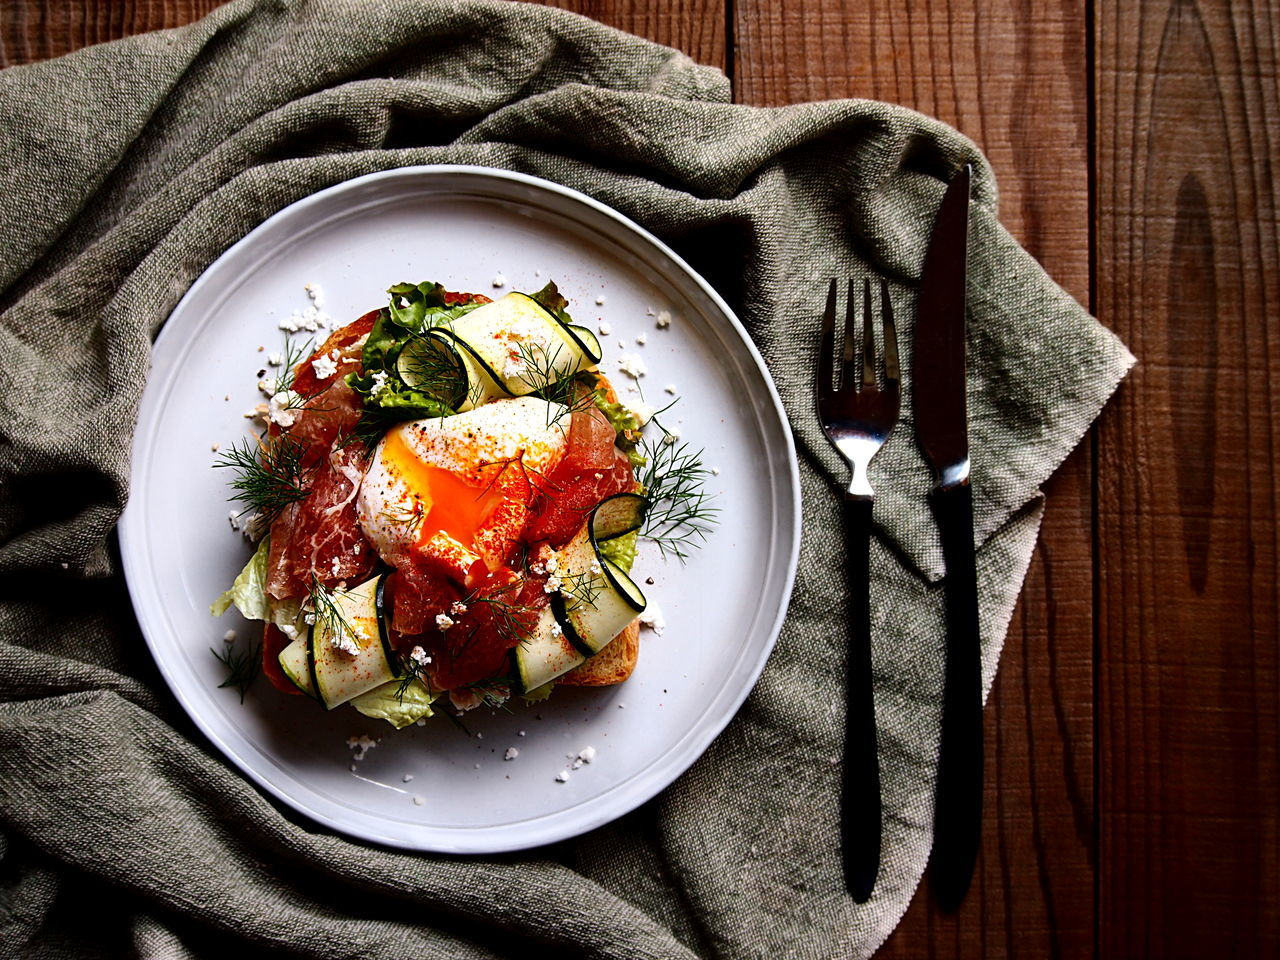 Smorrbrod Breakfast Close-up Directly Above Egg Focus On Foreground Food Food And Drink Food Photography Freshness Healthy Eating High Angle View Lunch My Point Of View On The Table Plate Toasted Bread Vegetable Visual Feast